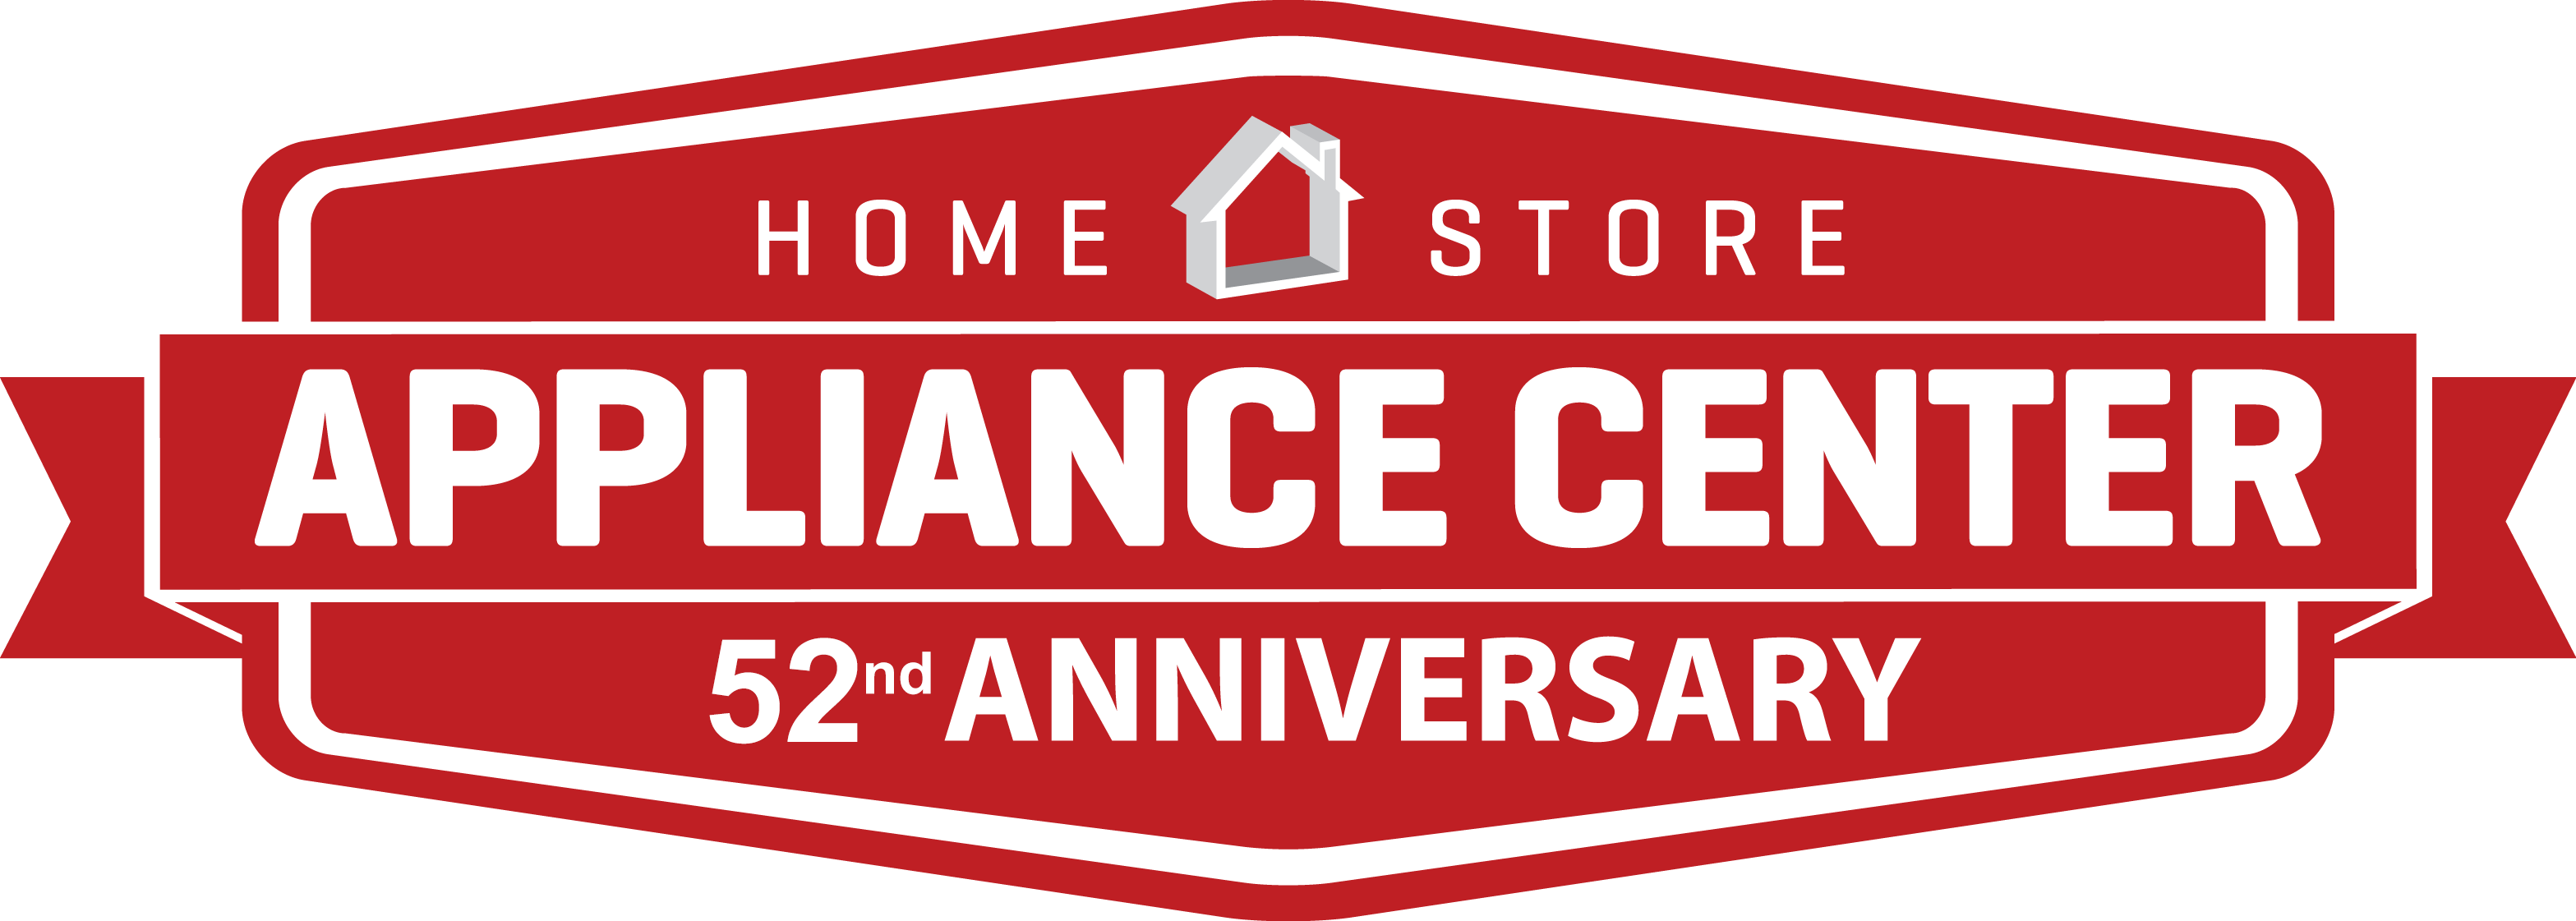 Appliance Center Logo